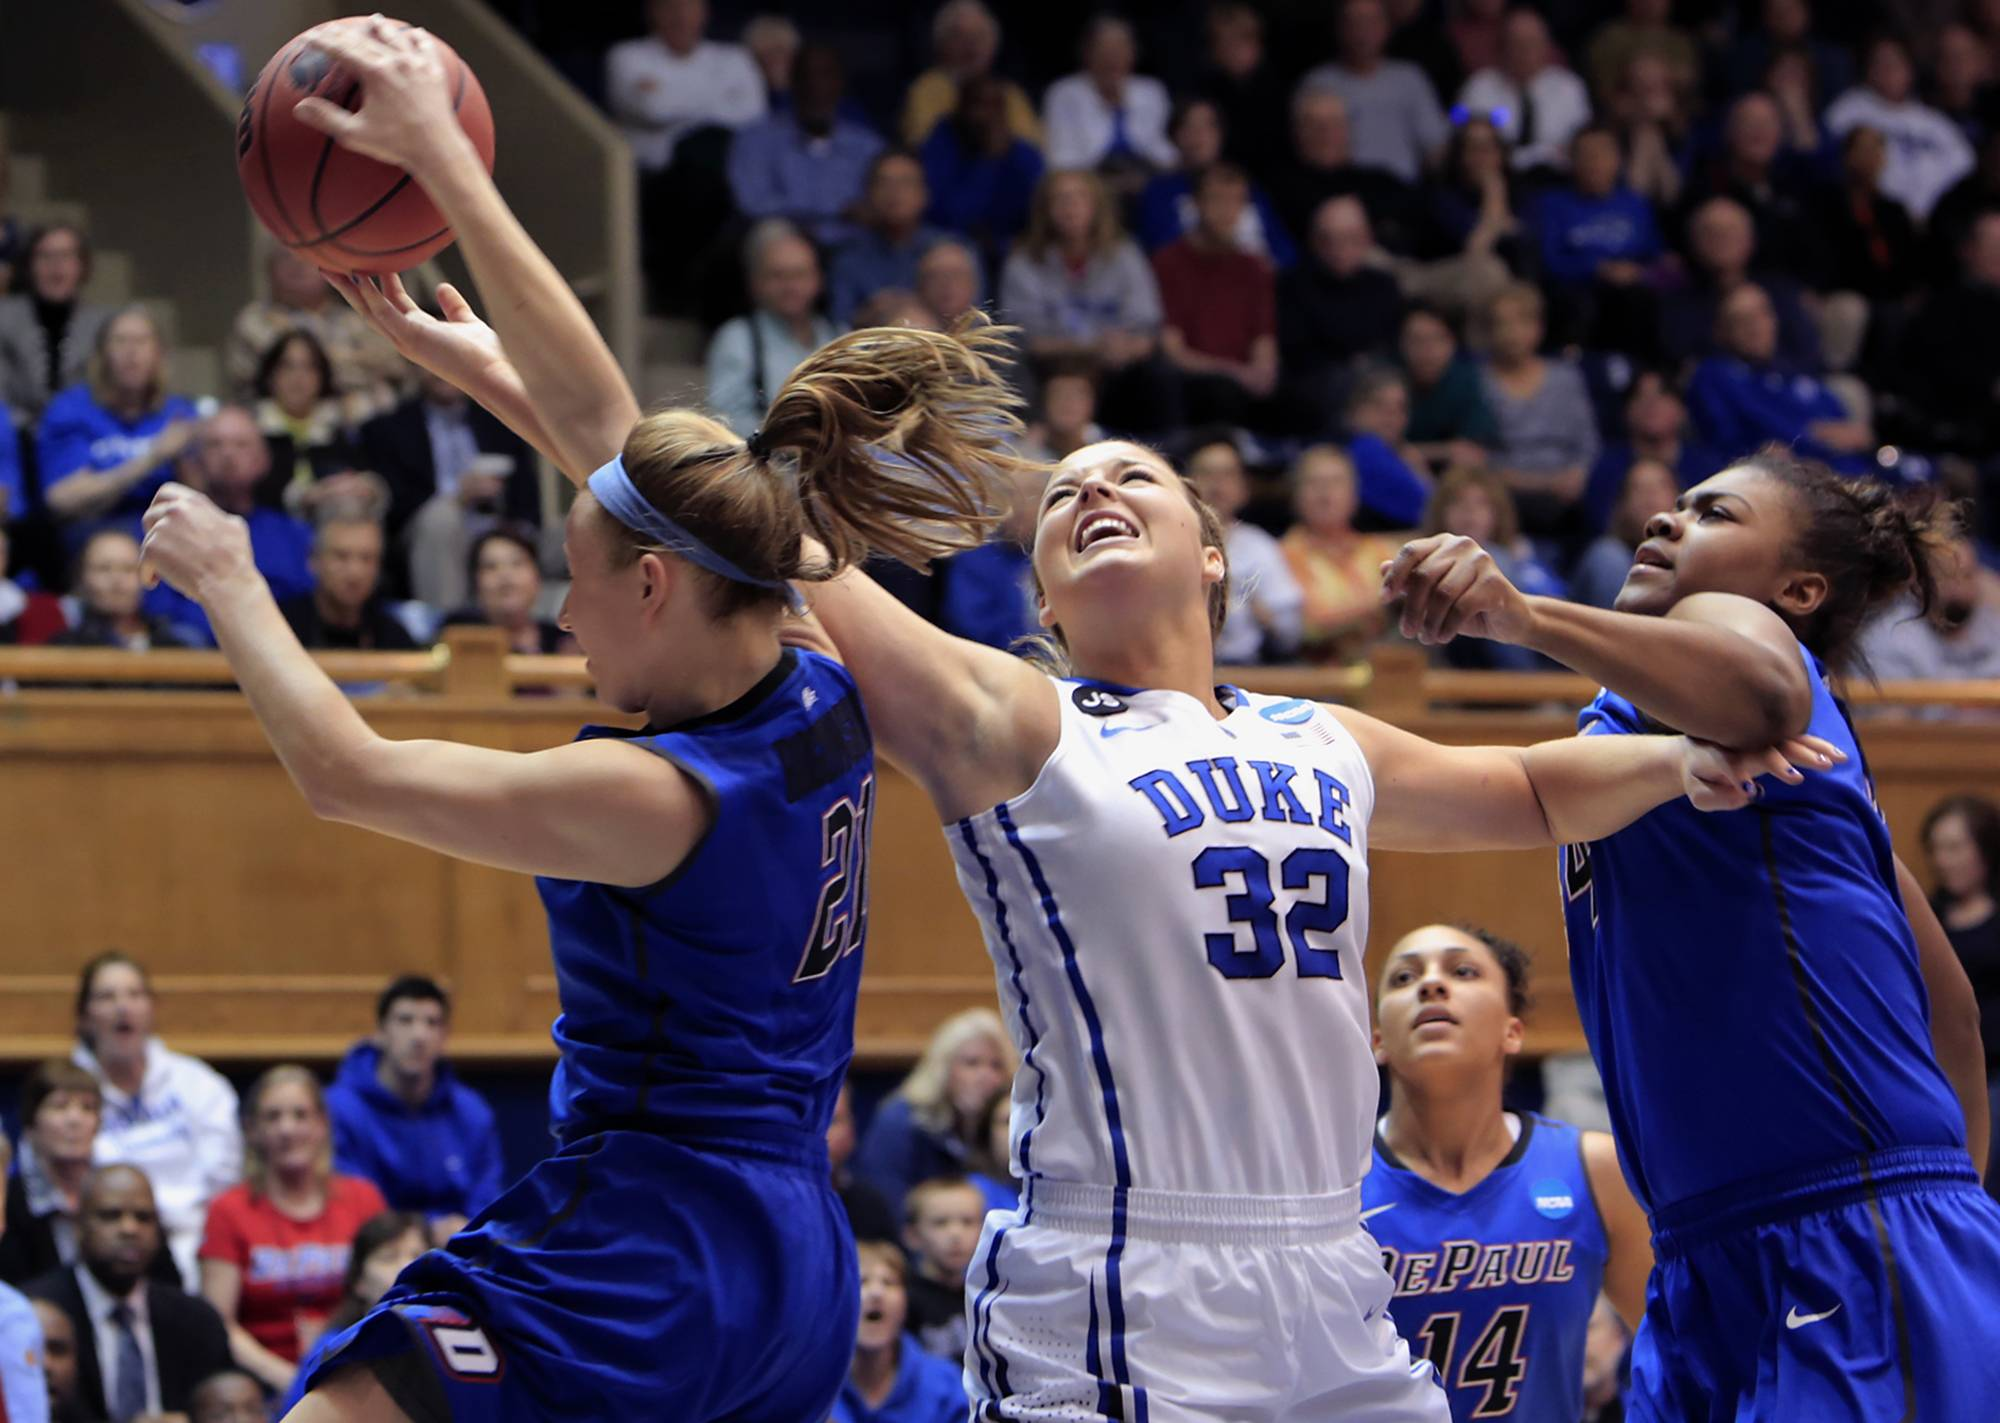 DePaul's Megan Rogowski, left, blocks a shot by Duke's Tricia Liston (32) near DePaul's Brandi Harvey-Carr, right, during the first half of their second-round game in the NCAA basketball tournament in Durham, N.C., Monday, March 24, 2014. (AP Photo/Ted Richardson)